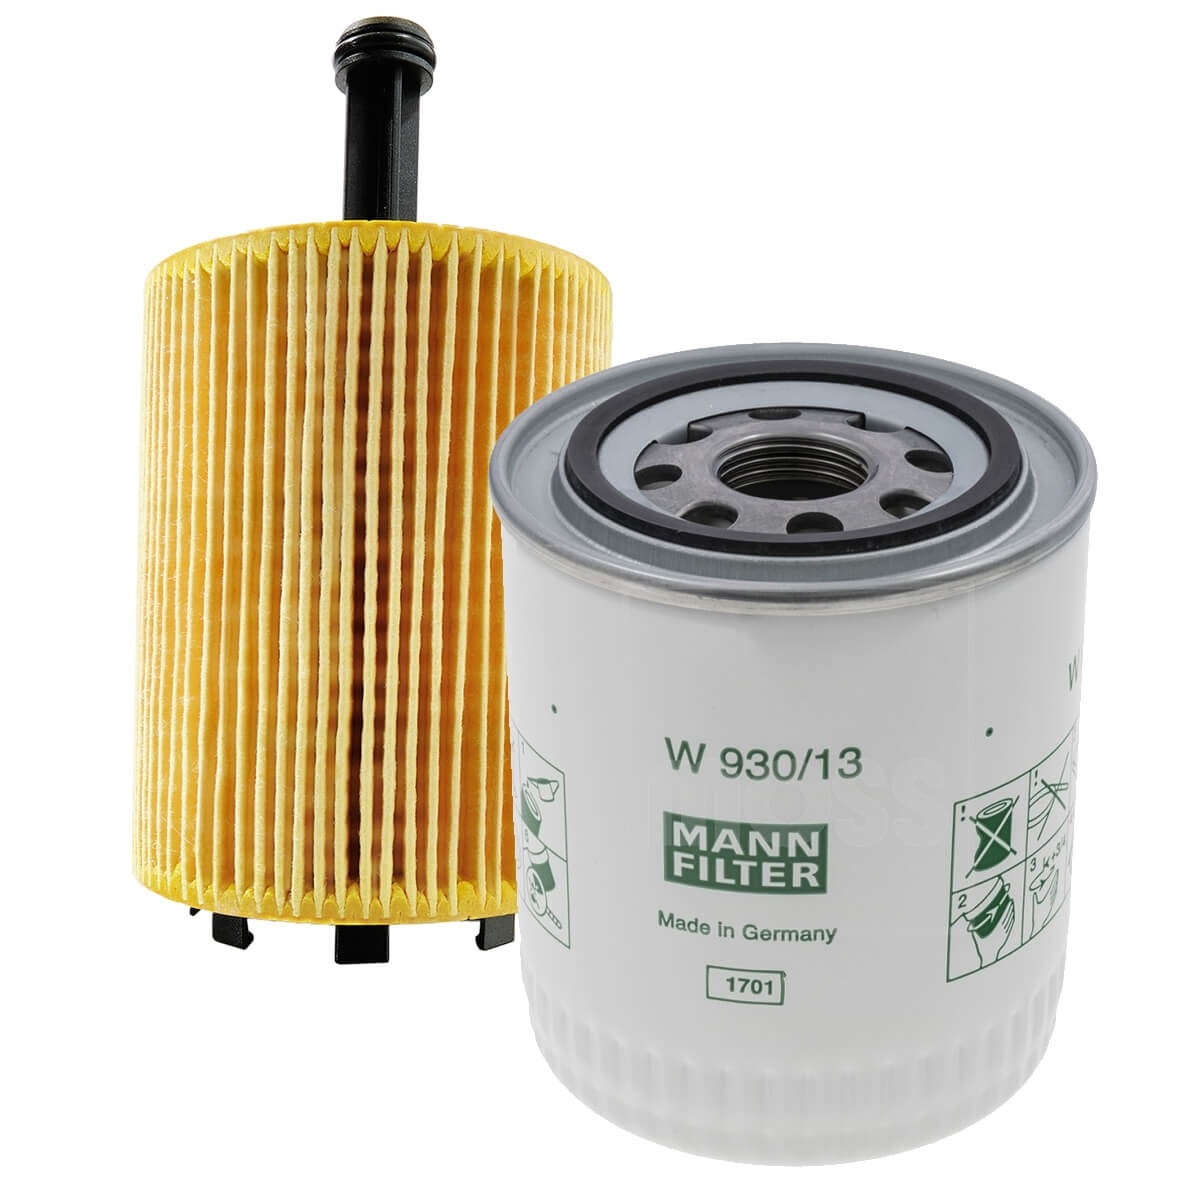 BEDFORD CHEVANNE Oil Filter